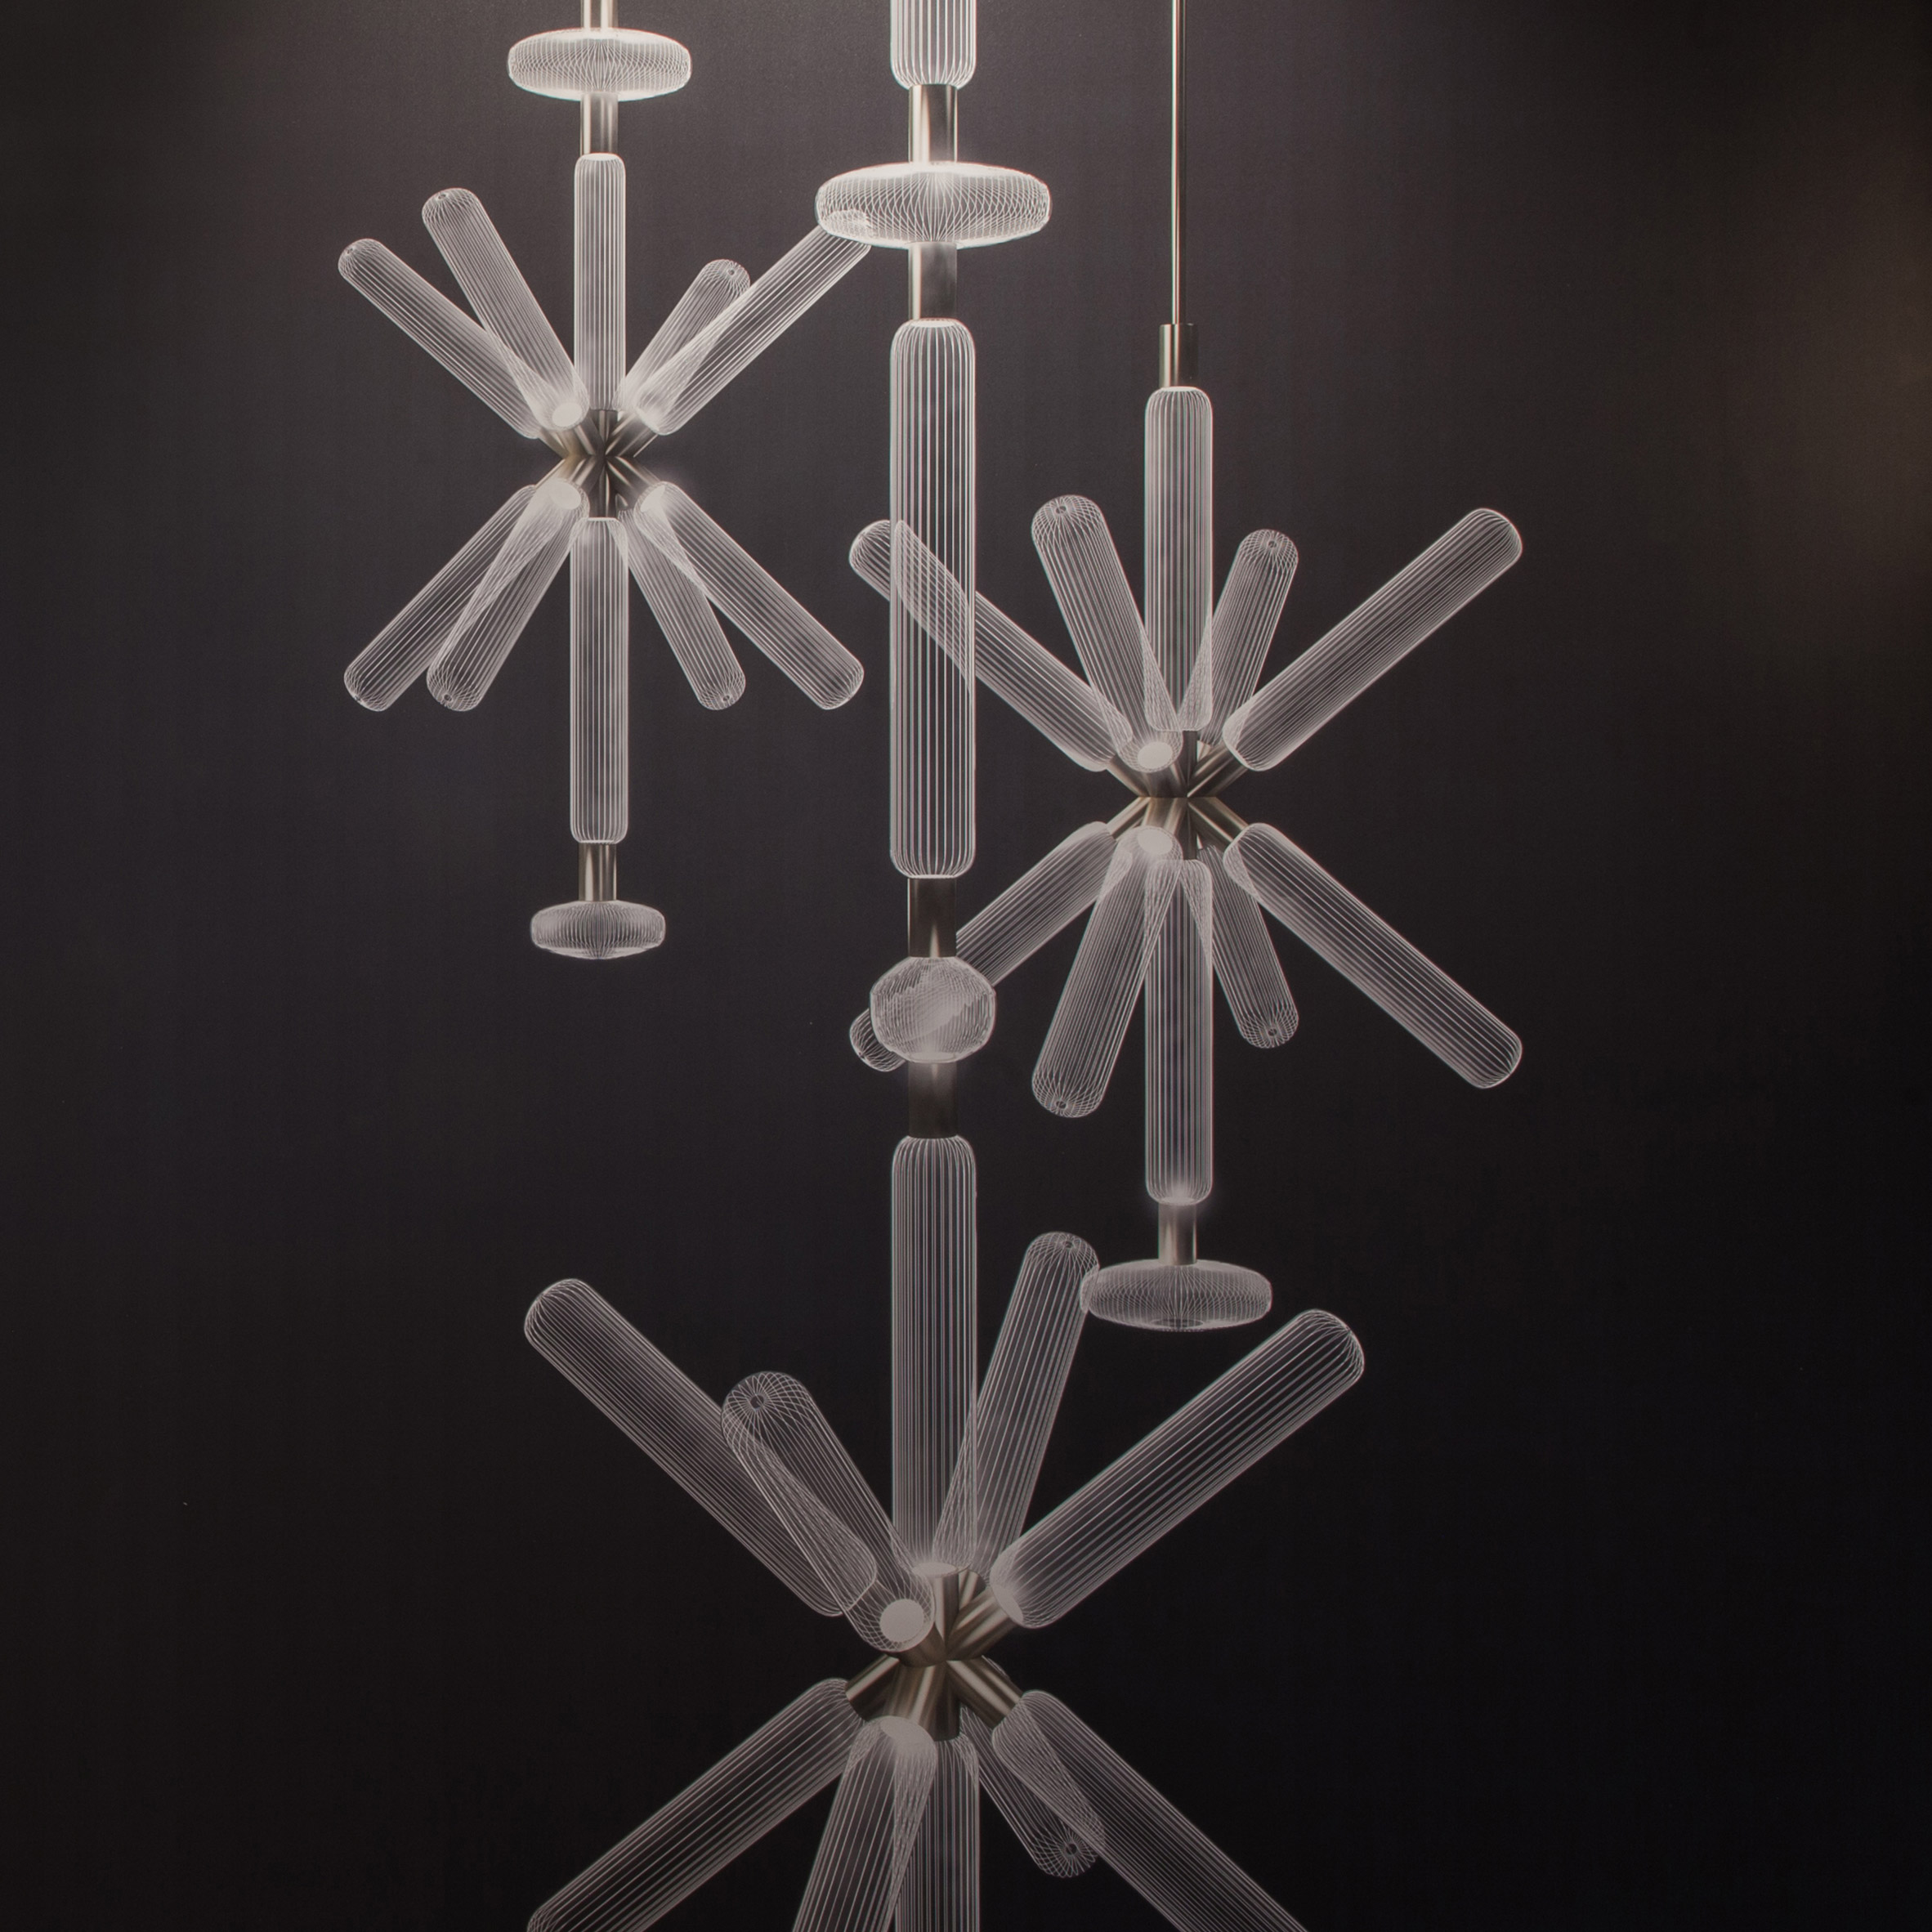 Cool Yabu Pushelberg presents handblown celestial lighting collection for Lasvit